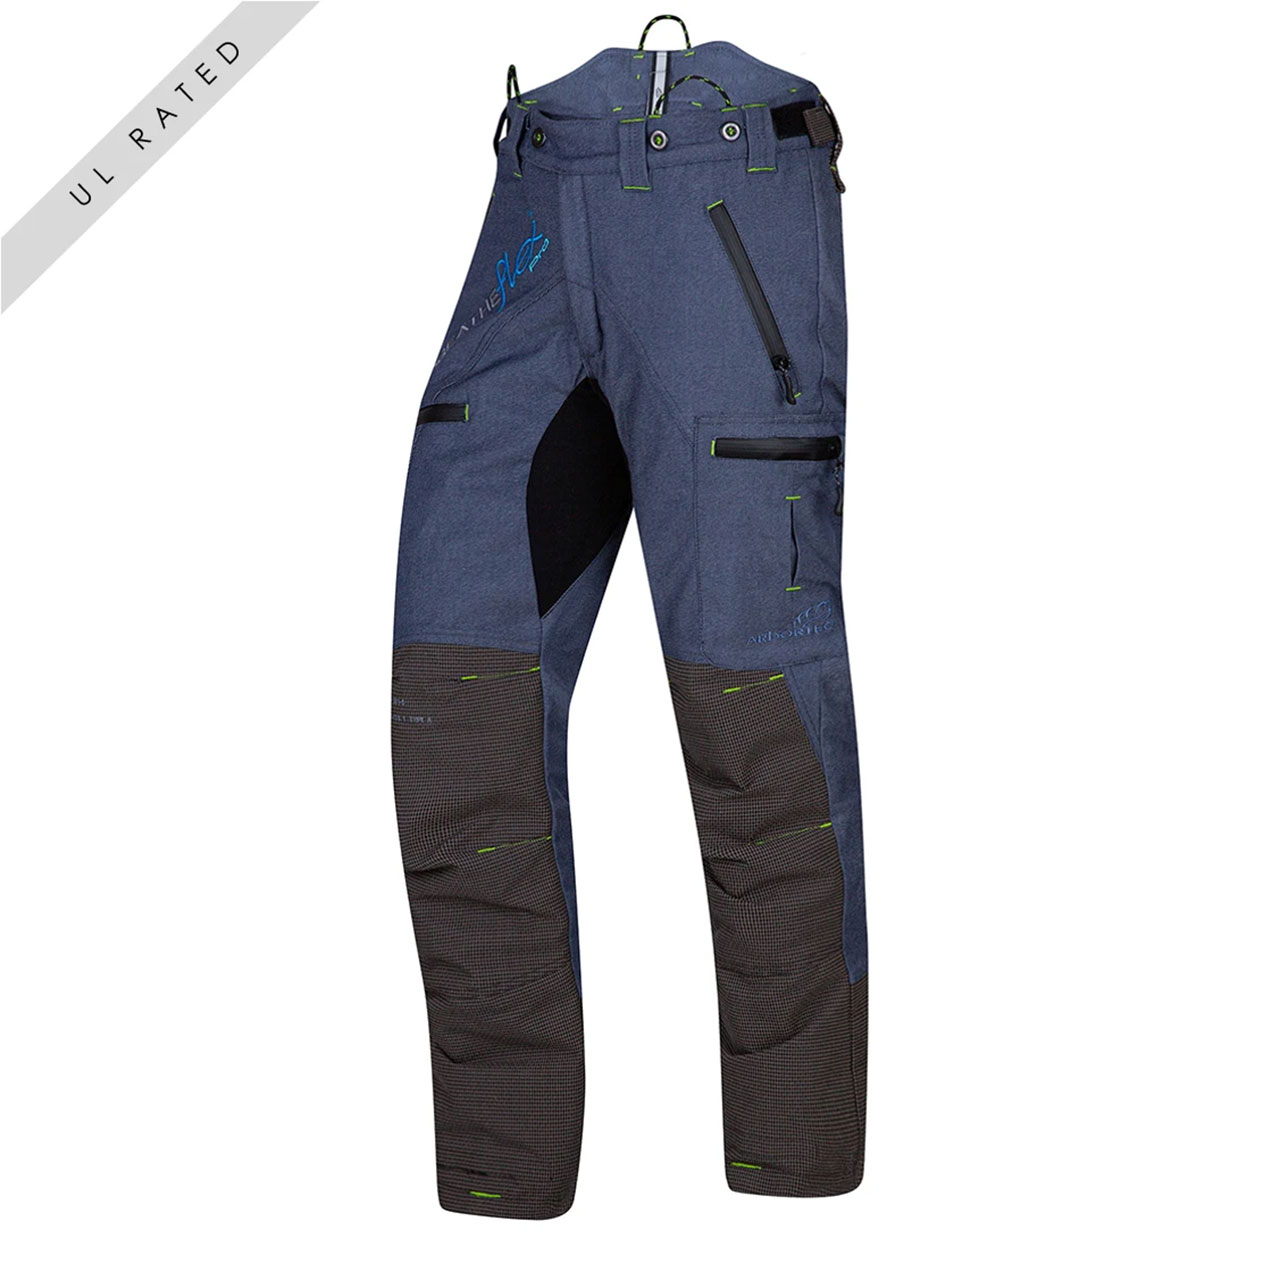 "Breatheflex PRO ""Legacy""  Chainsaw Trousers - Class 1, Type A, UL Rated image"